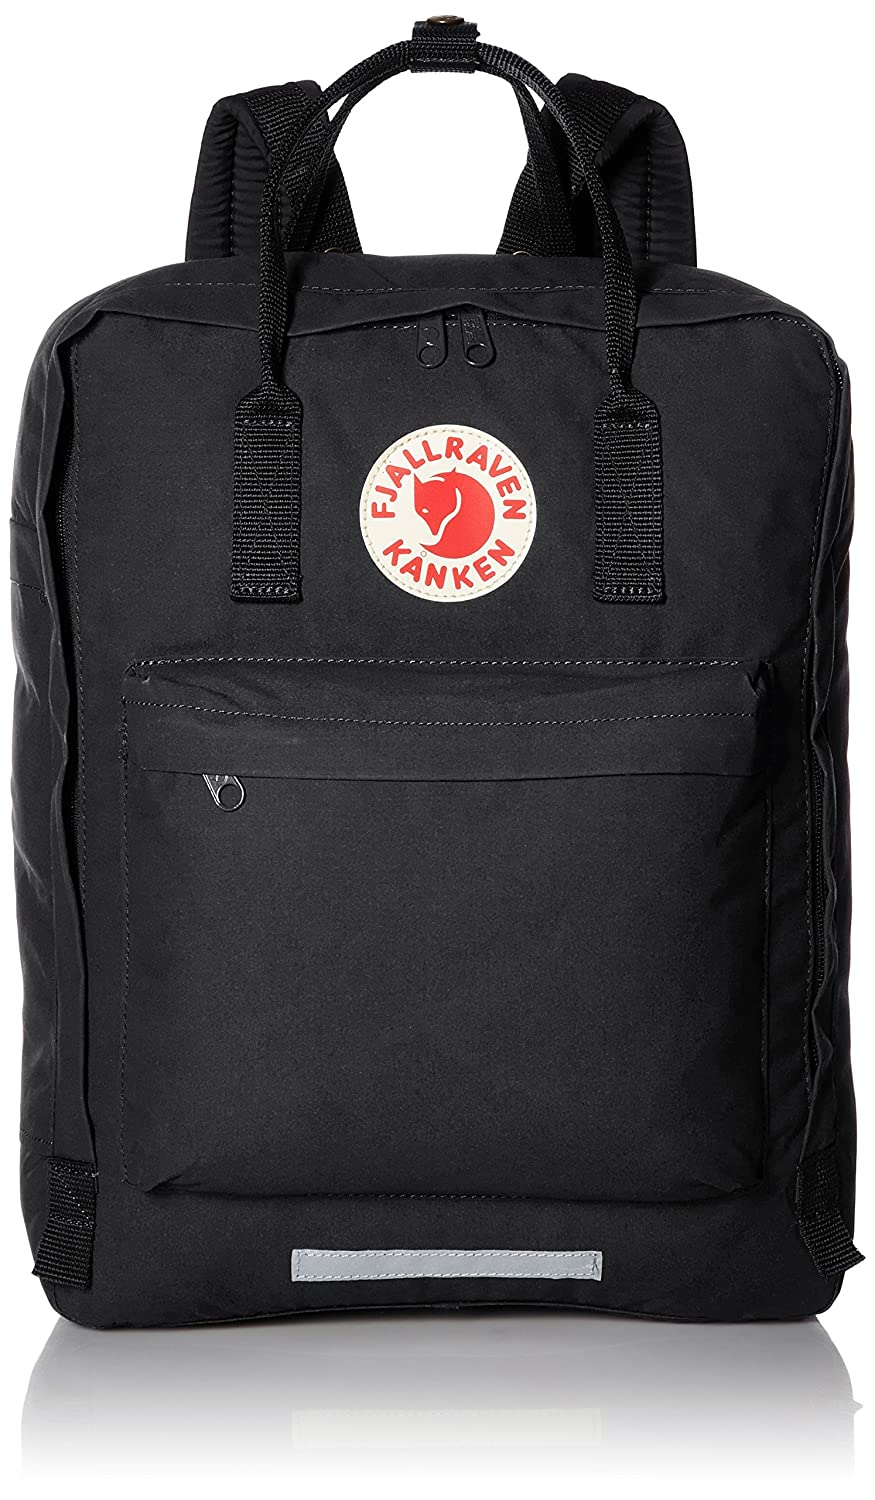 fjällräven kanken in warehouse deals